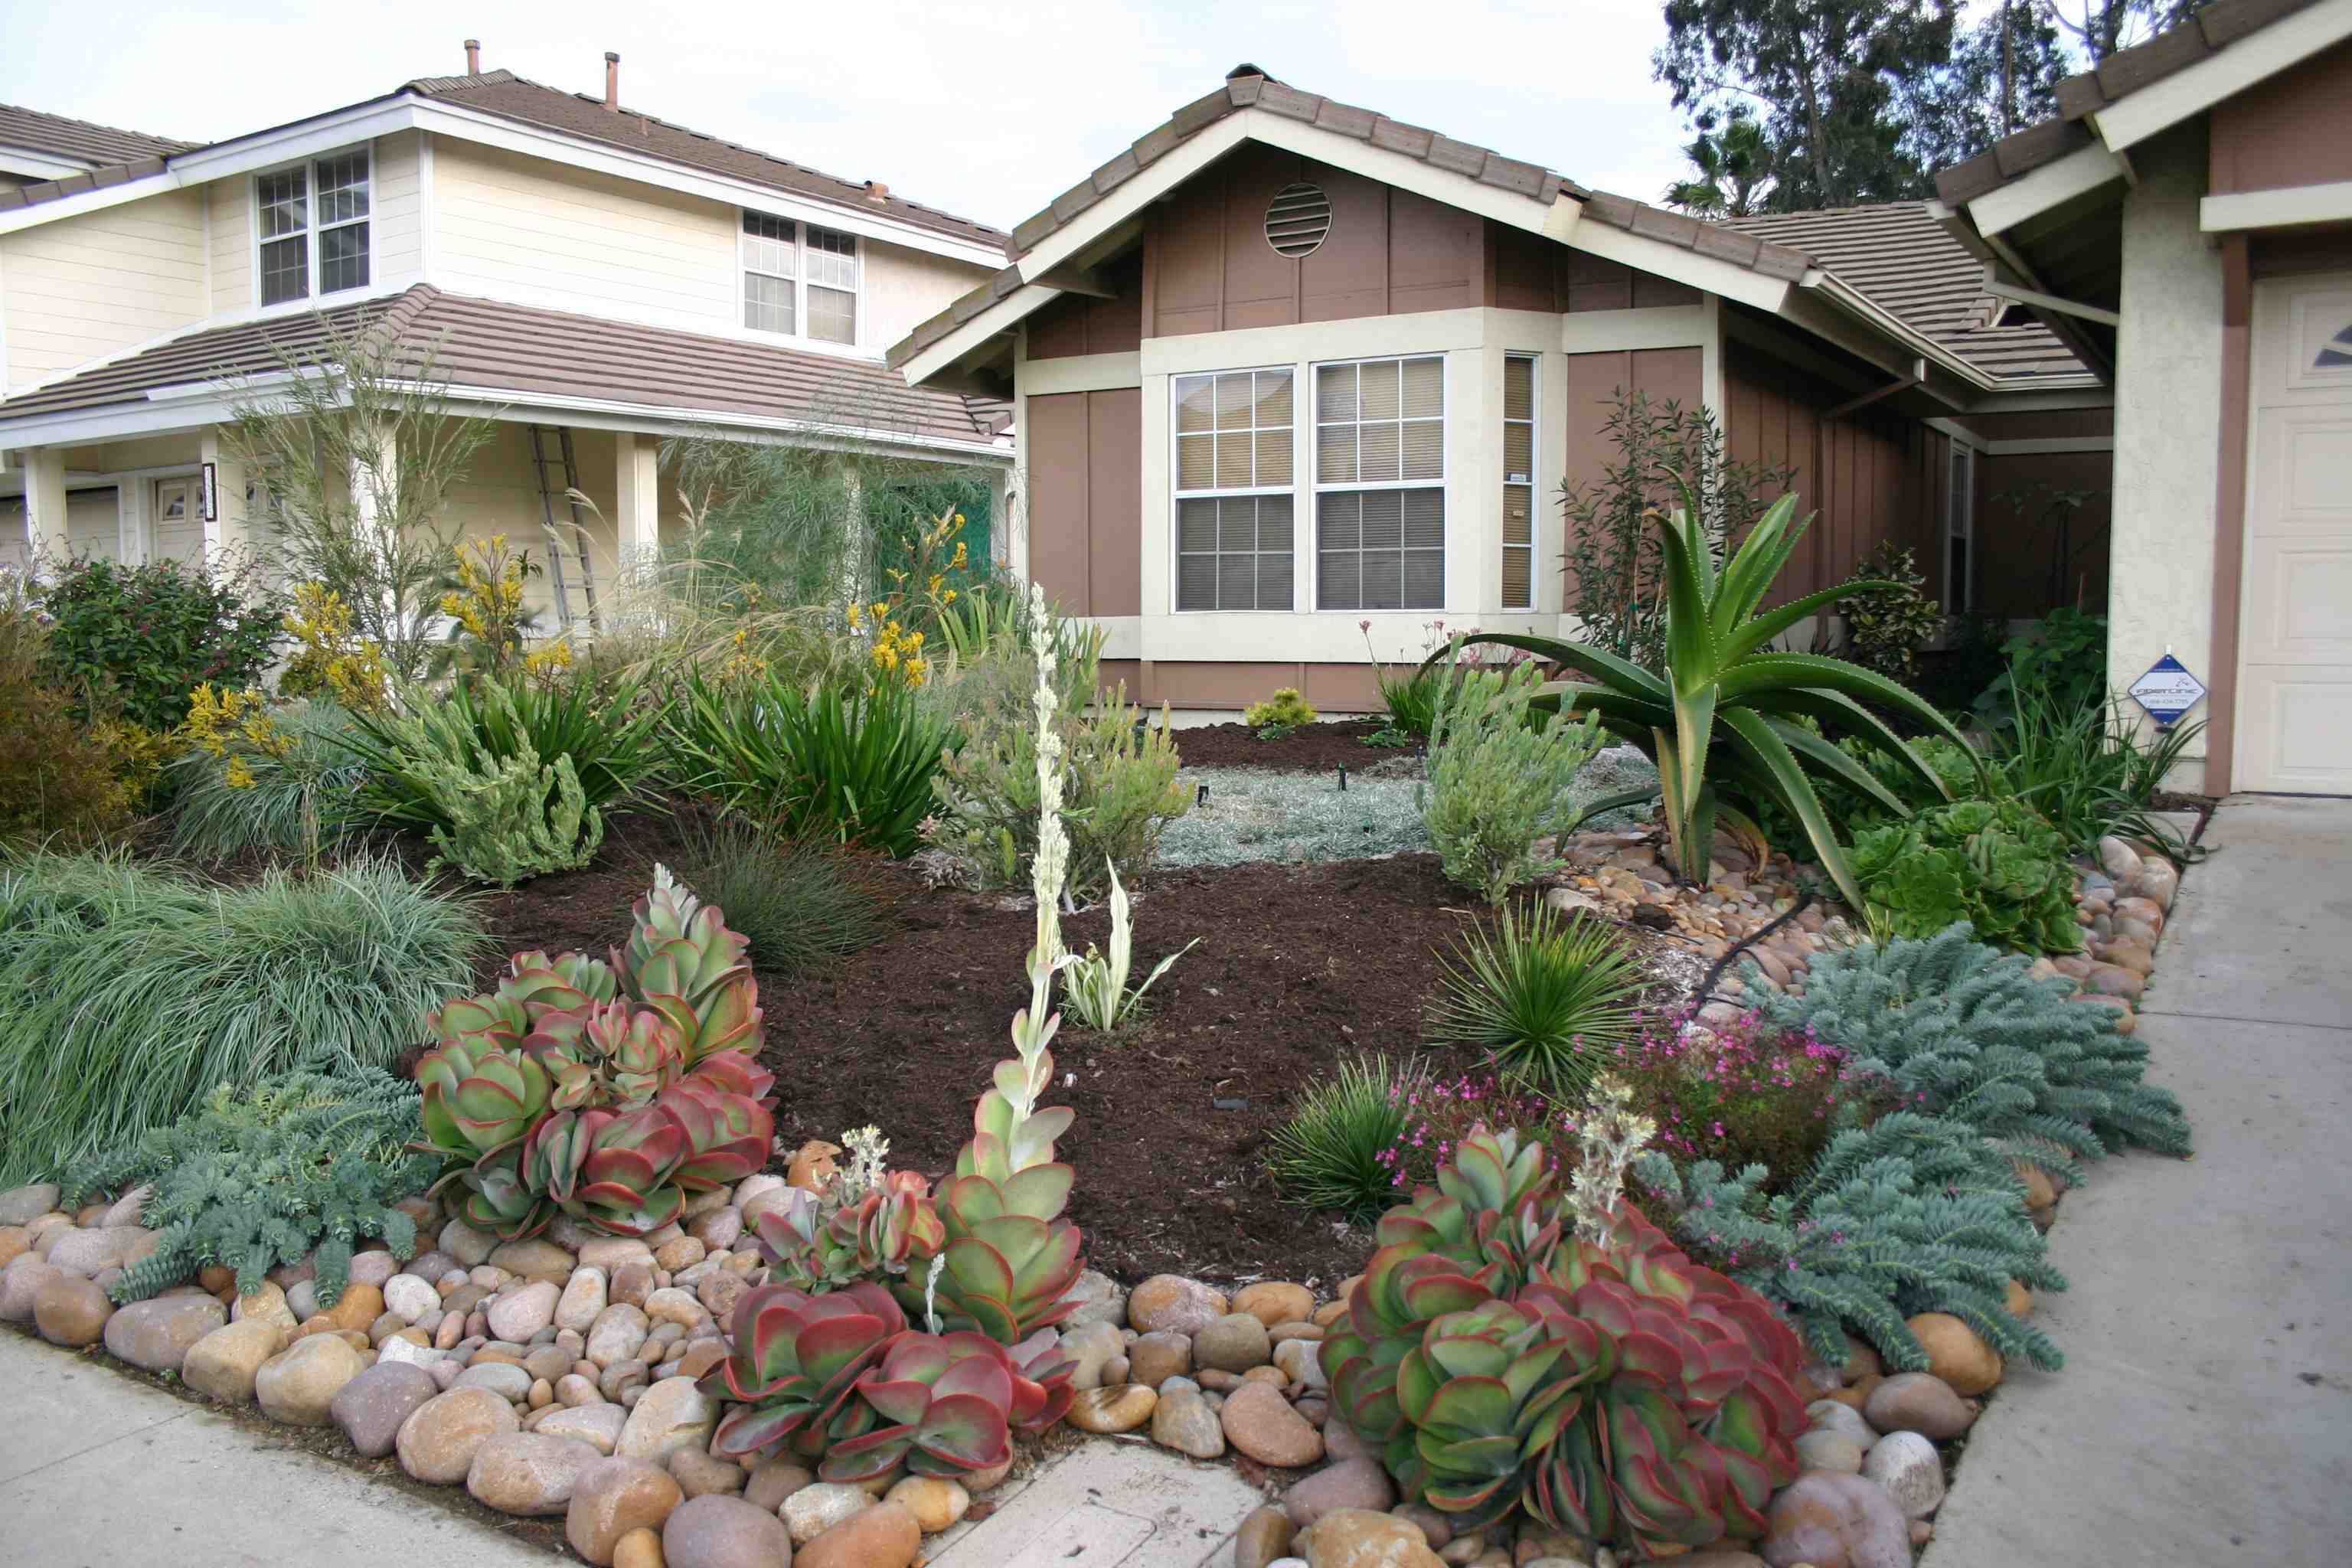 California drought resistant landscaping ideas drought for Front yard landscaping plants and shrubs